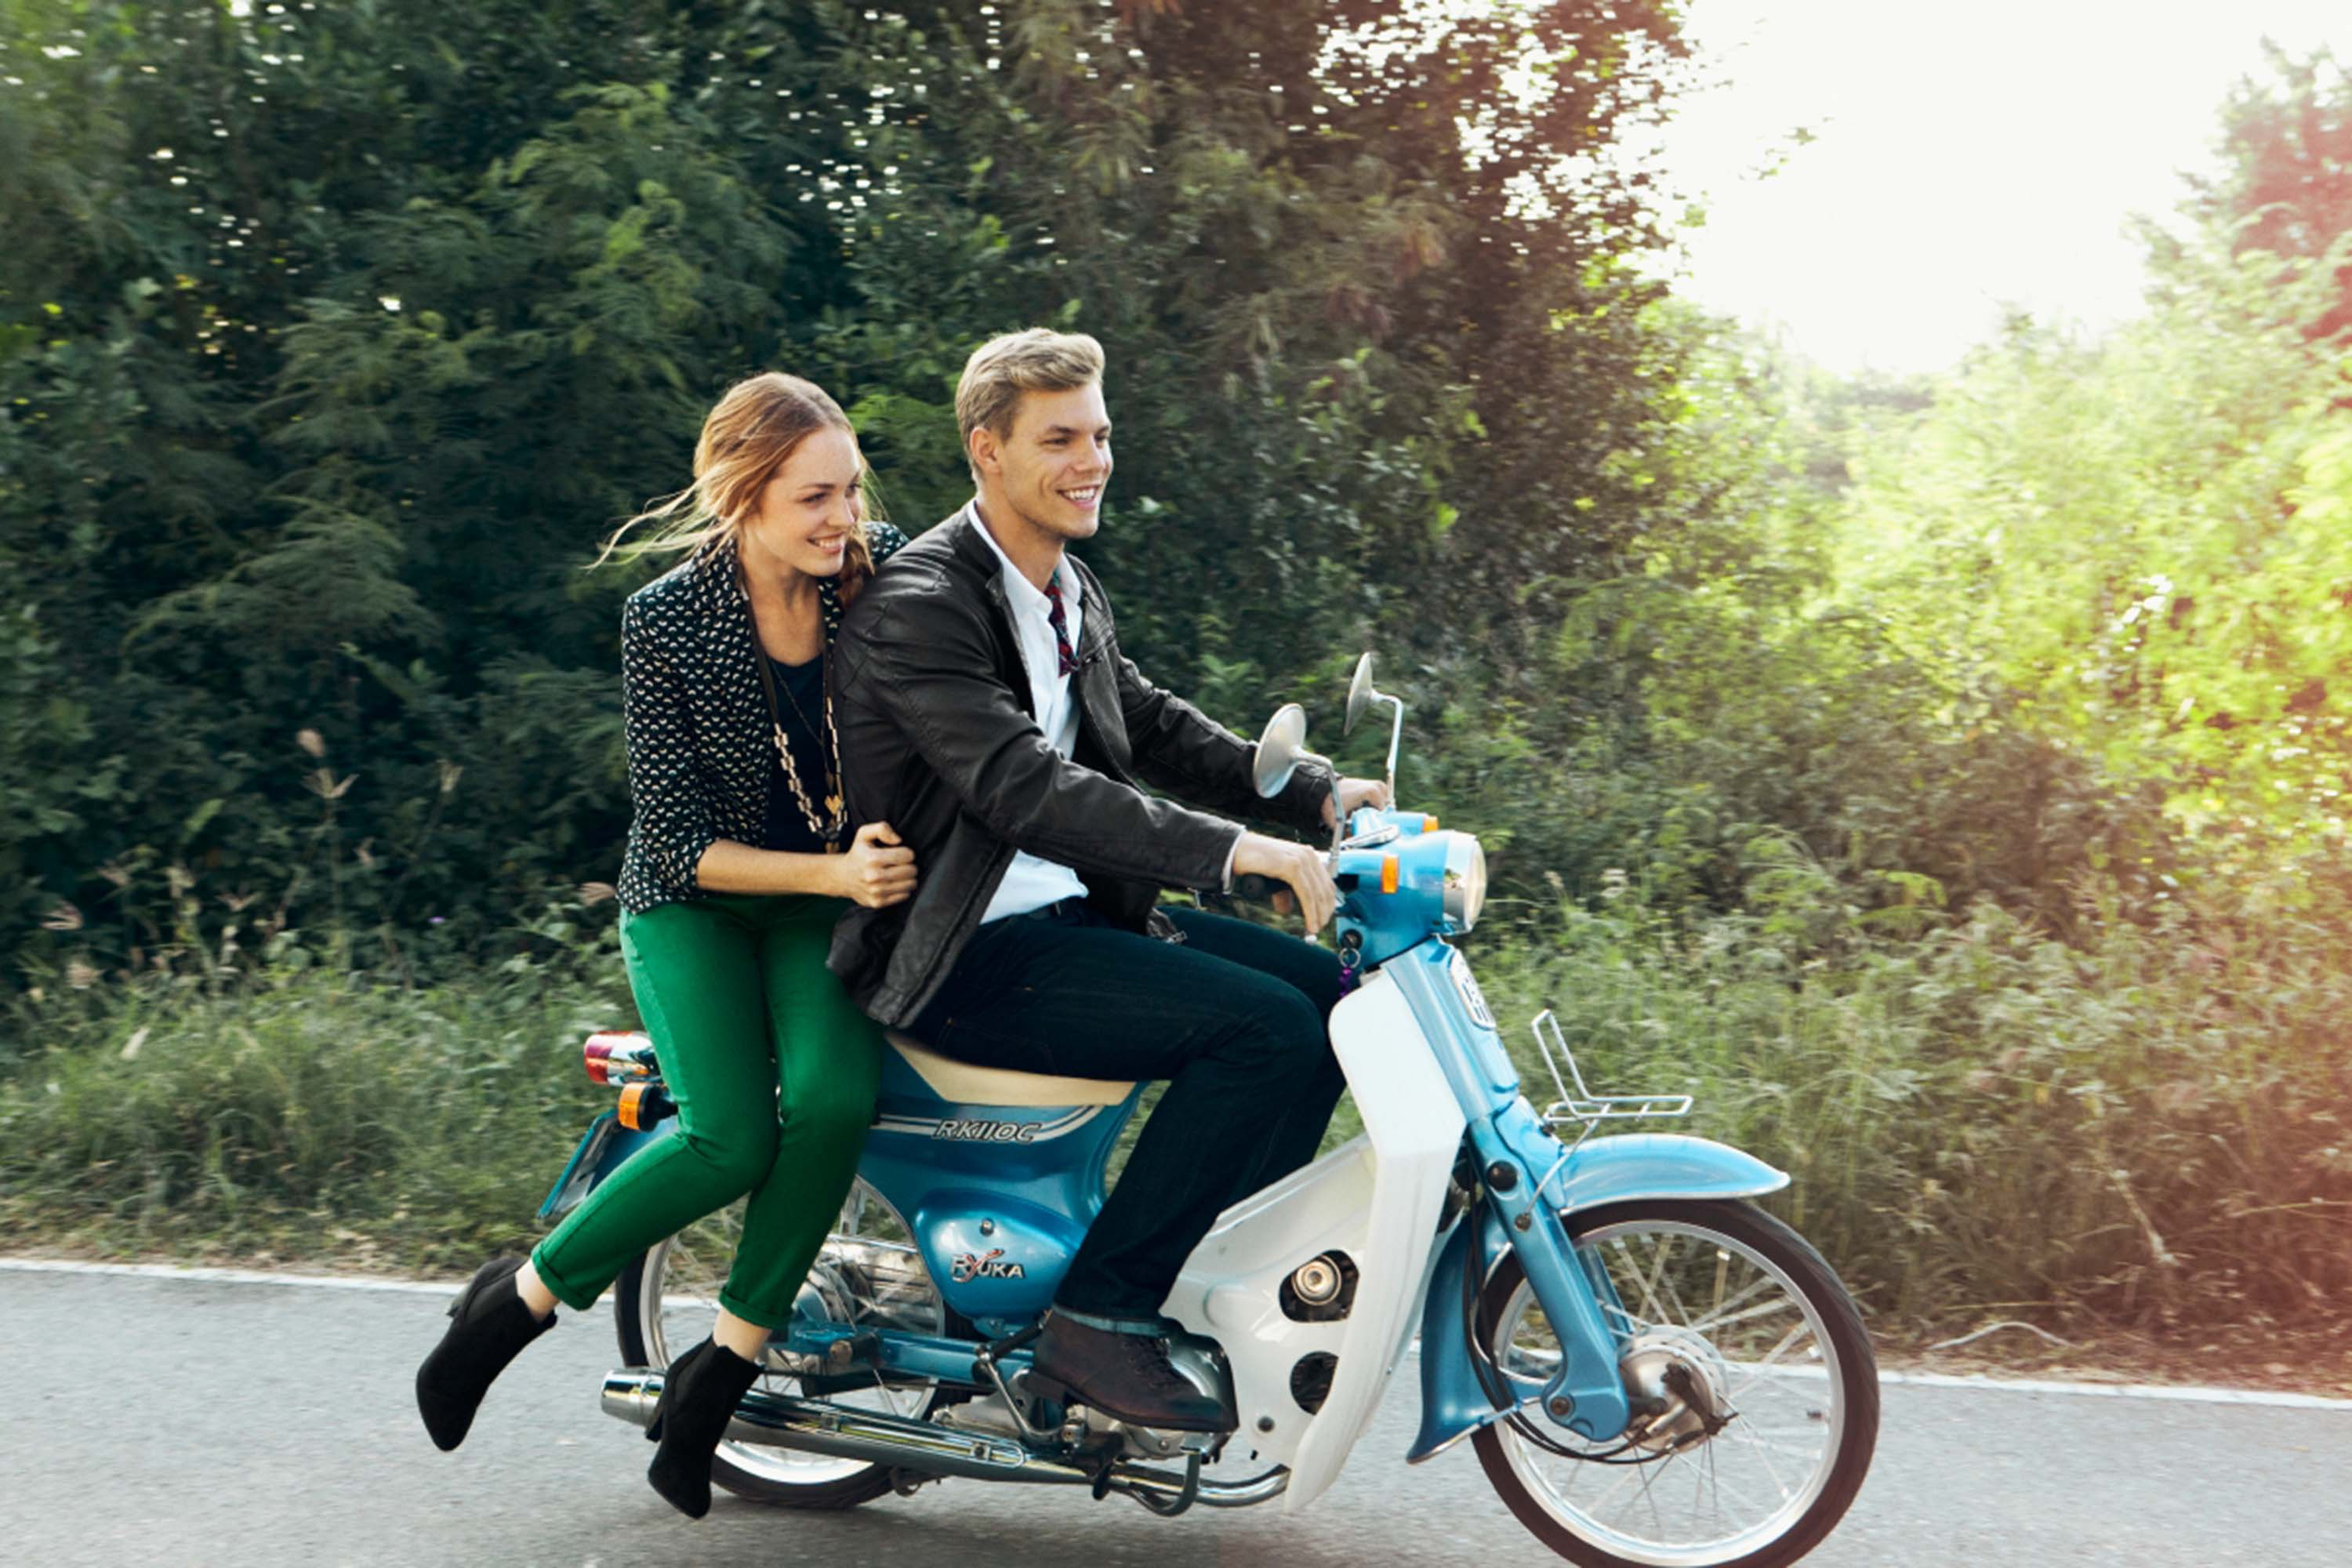 Man and woman riding on a moped